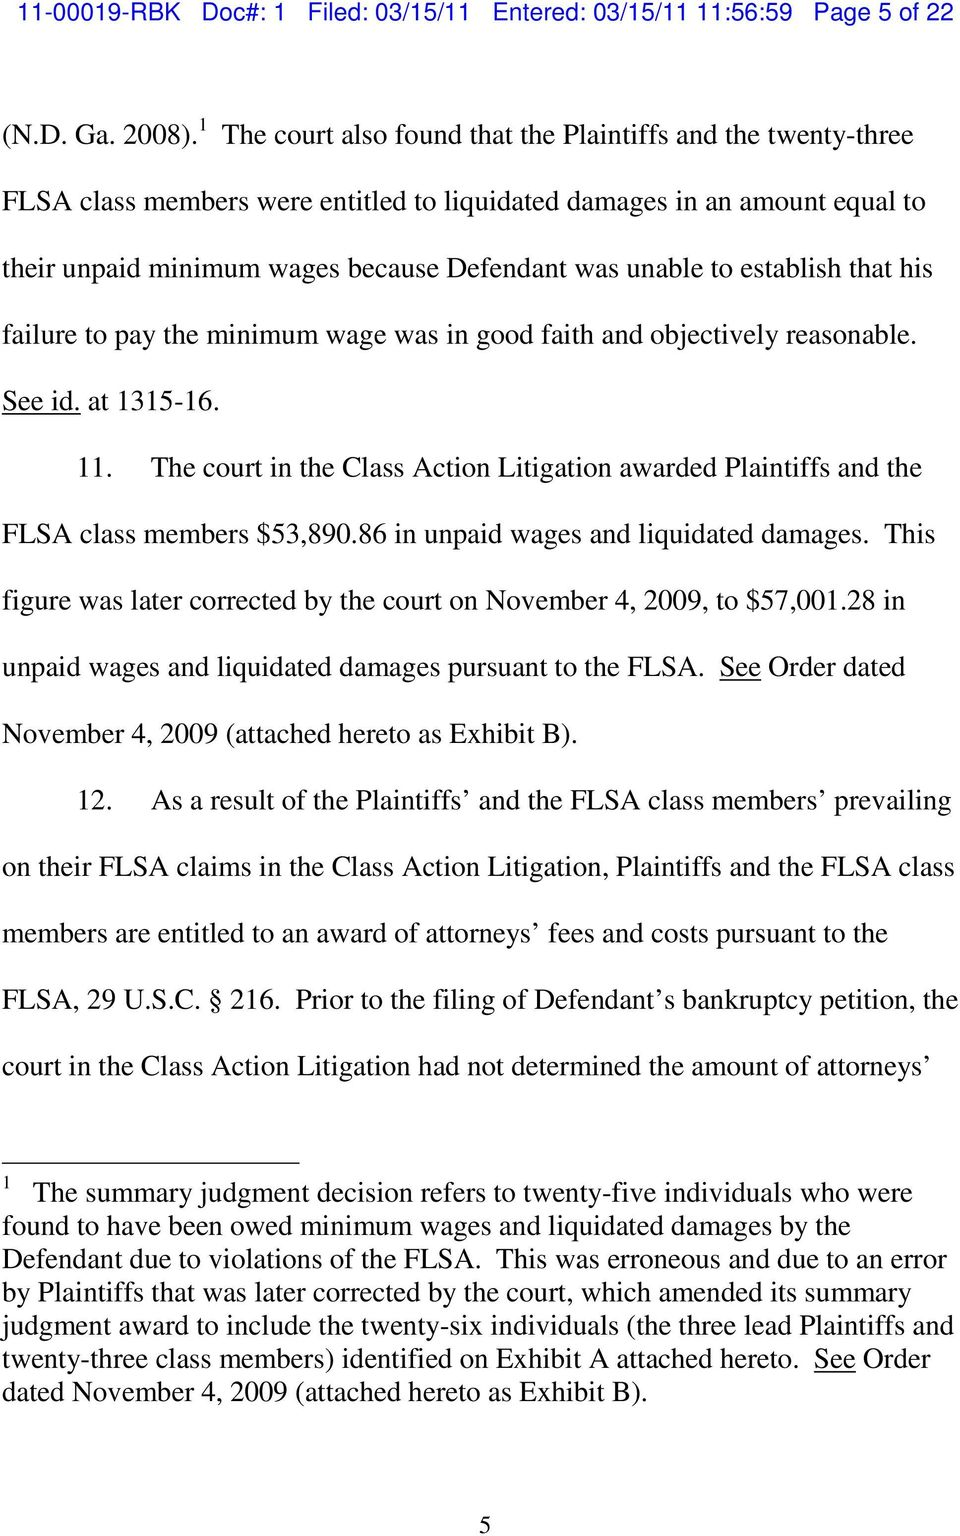 establish that his failure to pay the minimum wage was in good faith and objectively reasonable. See id. at 1315-16. 11.